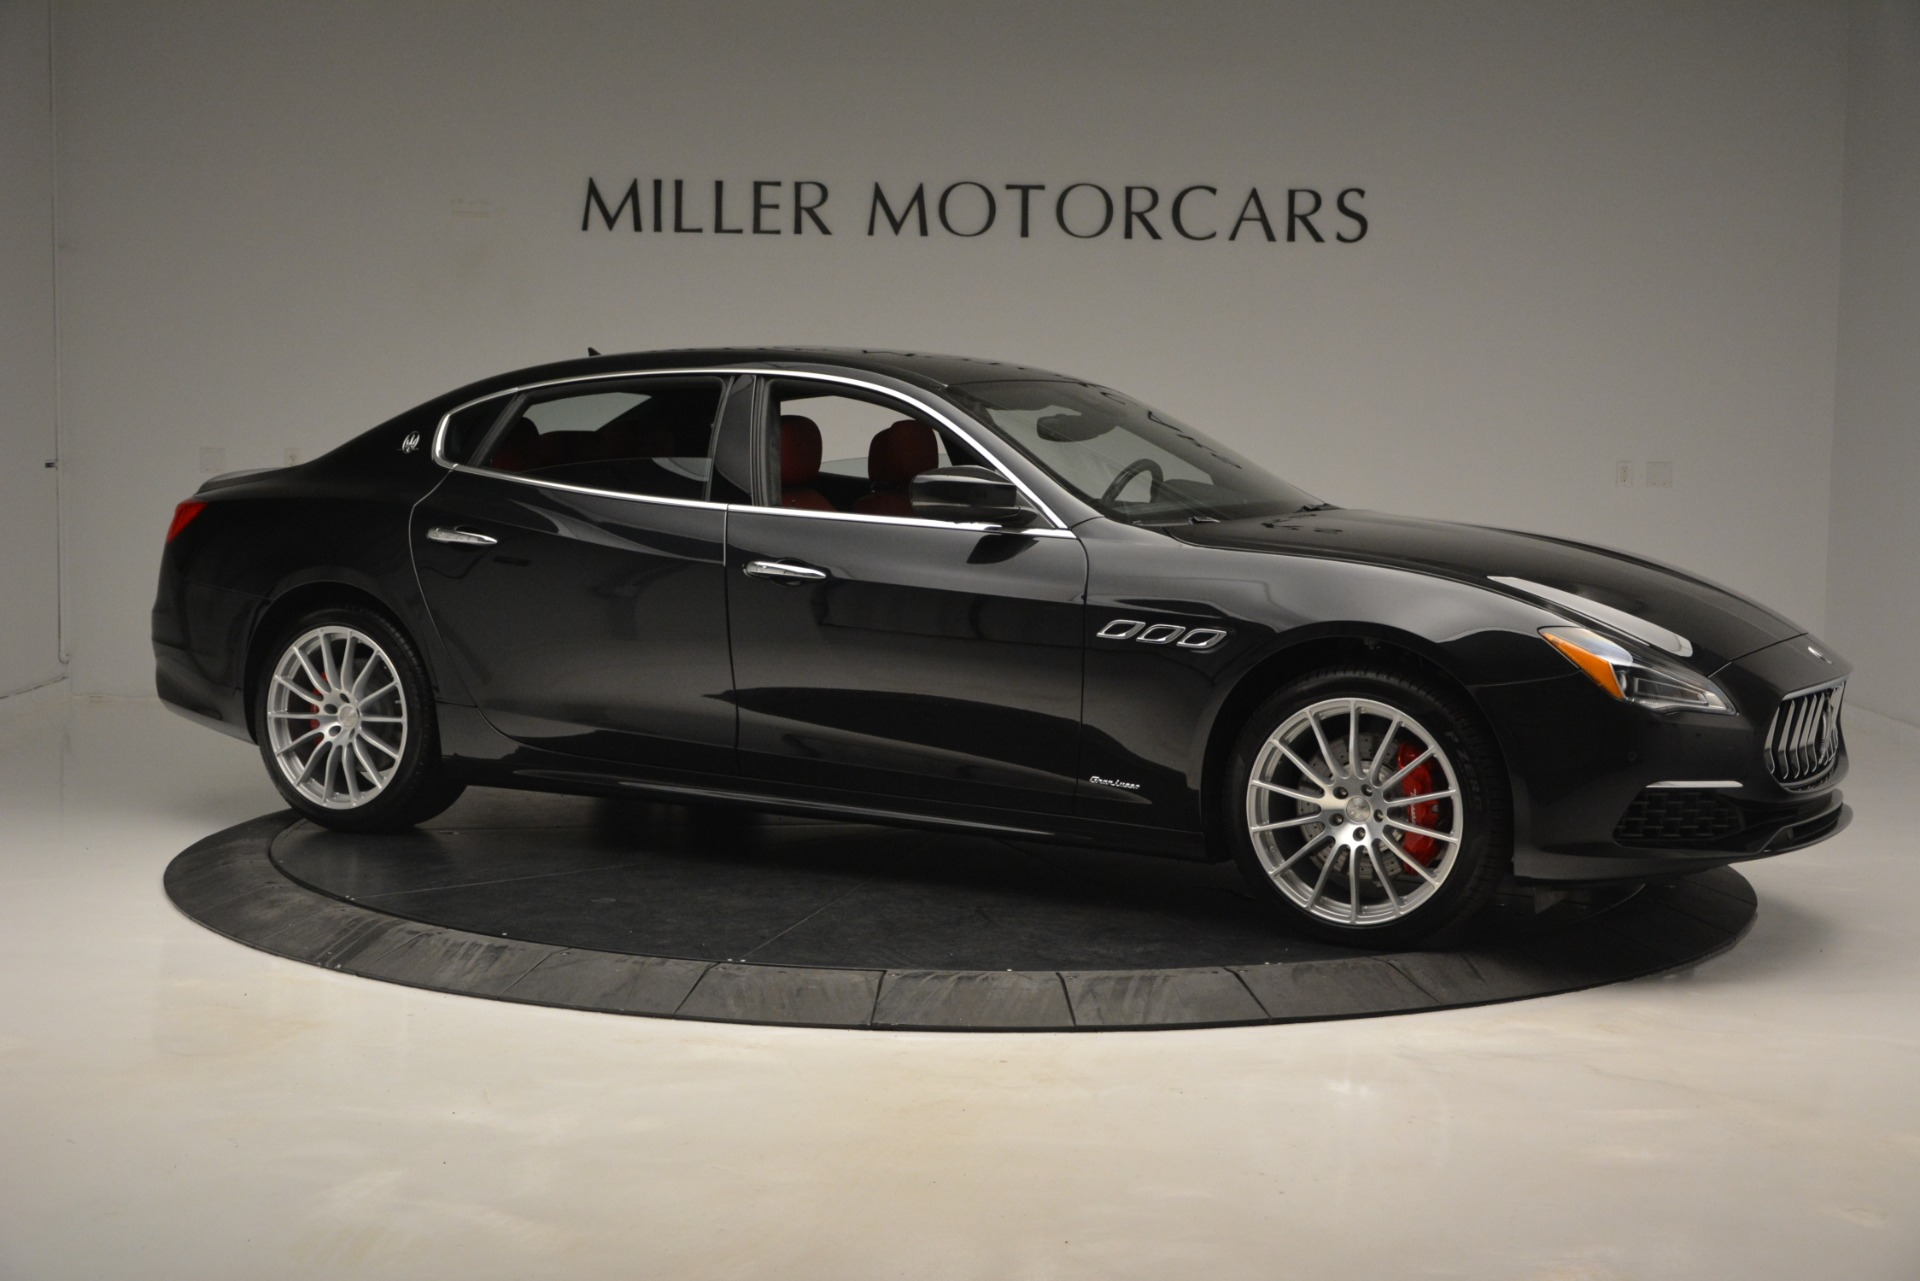 New 2019 Maserati Quattroporte S Q4 GranLusso For Sale In Greenwich, CT. Alfa Romeo of Greenwich, W629 2718_p10